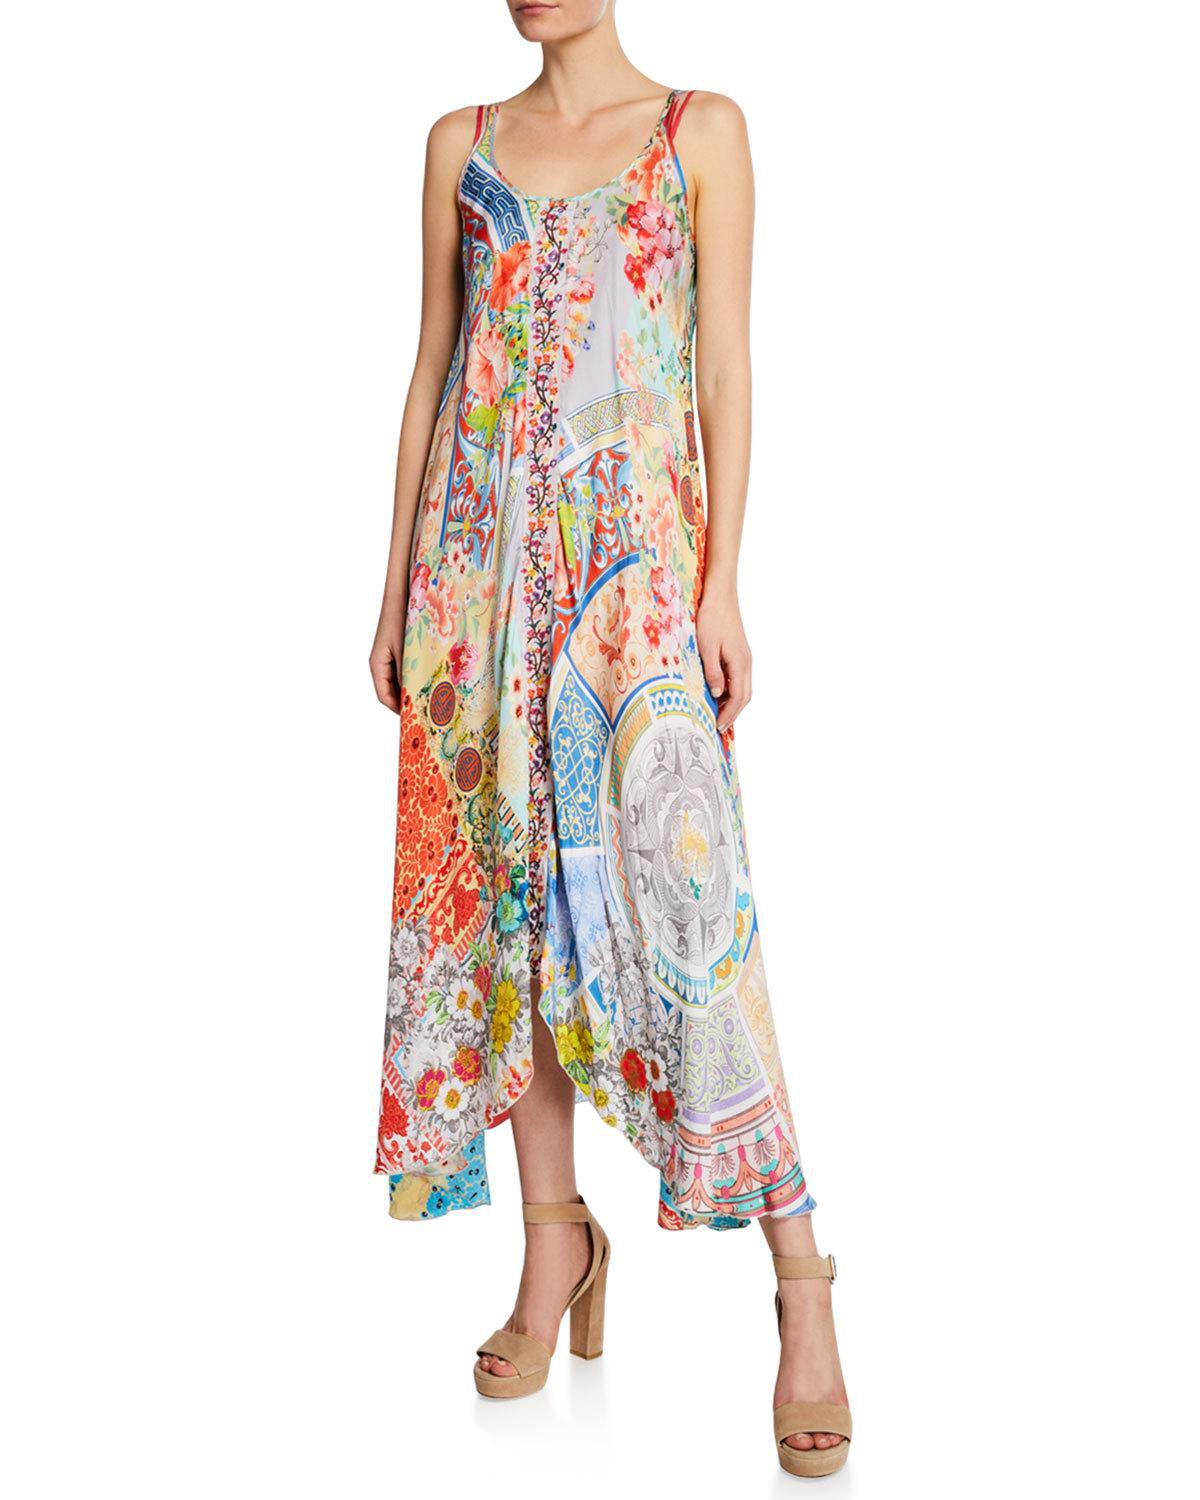 041e8b327631 Johnny Was Kara Mixed-Print Scoop-Neck Sleeveless Dress W/ Slip In Multi